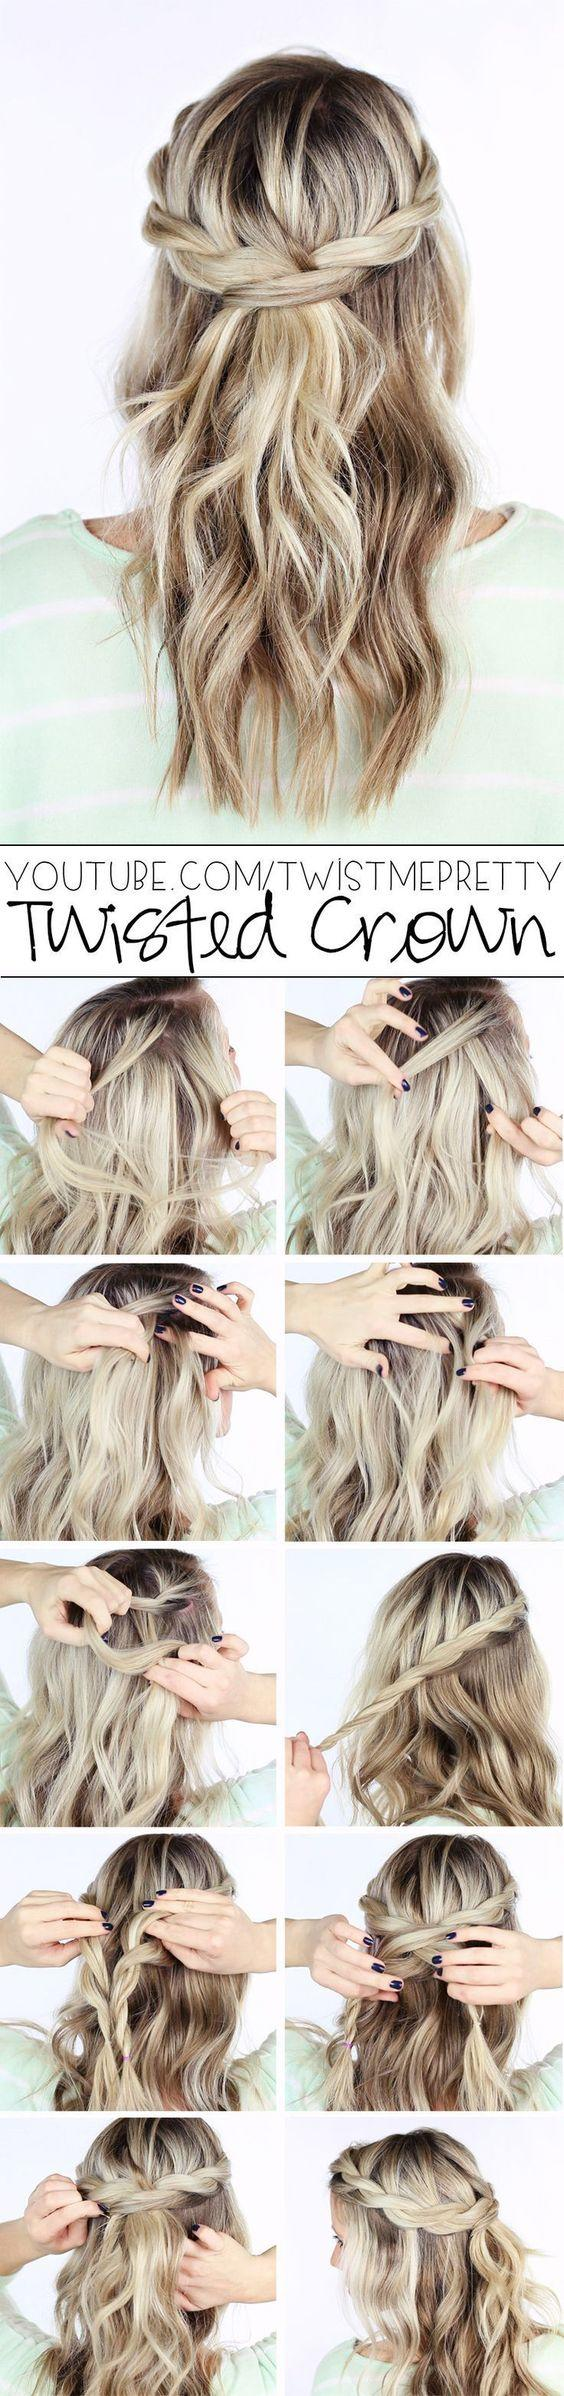 diy twisted crown wedding hairstyles